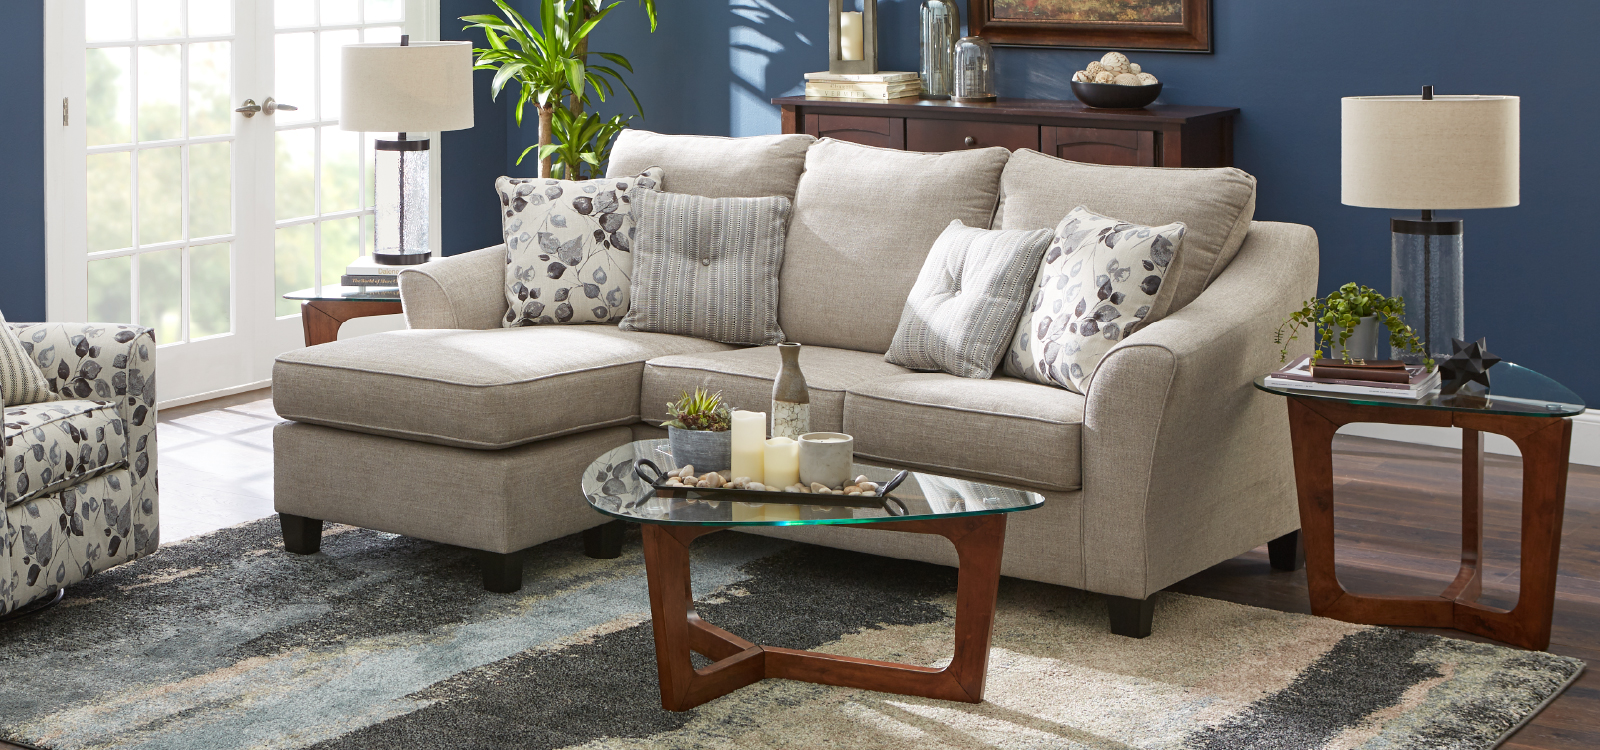 Modern Furniture Wichita Ks Slumberland Furniture Slumberland Online Store